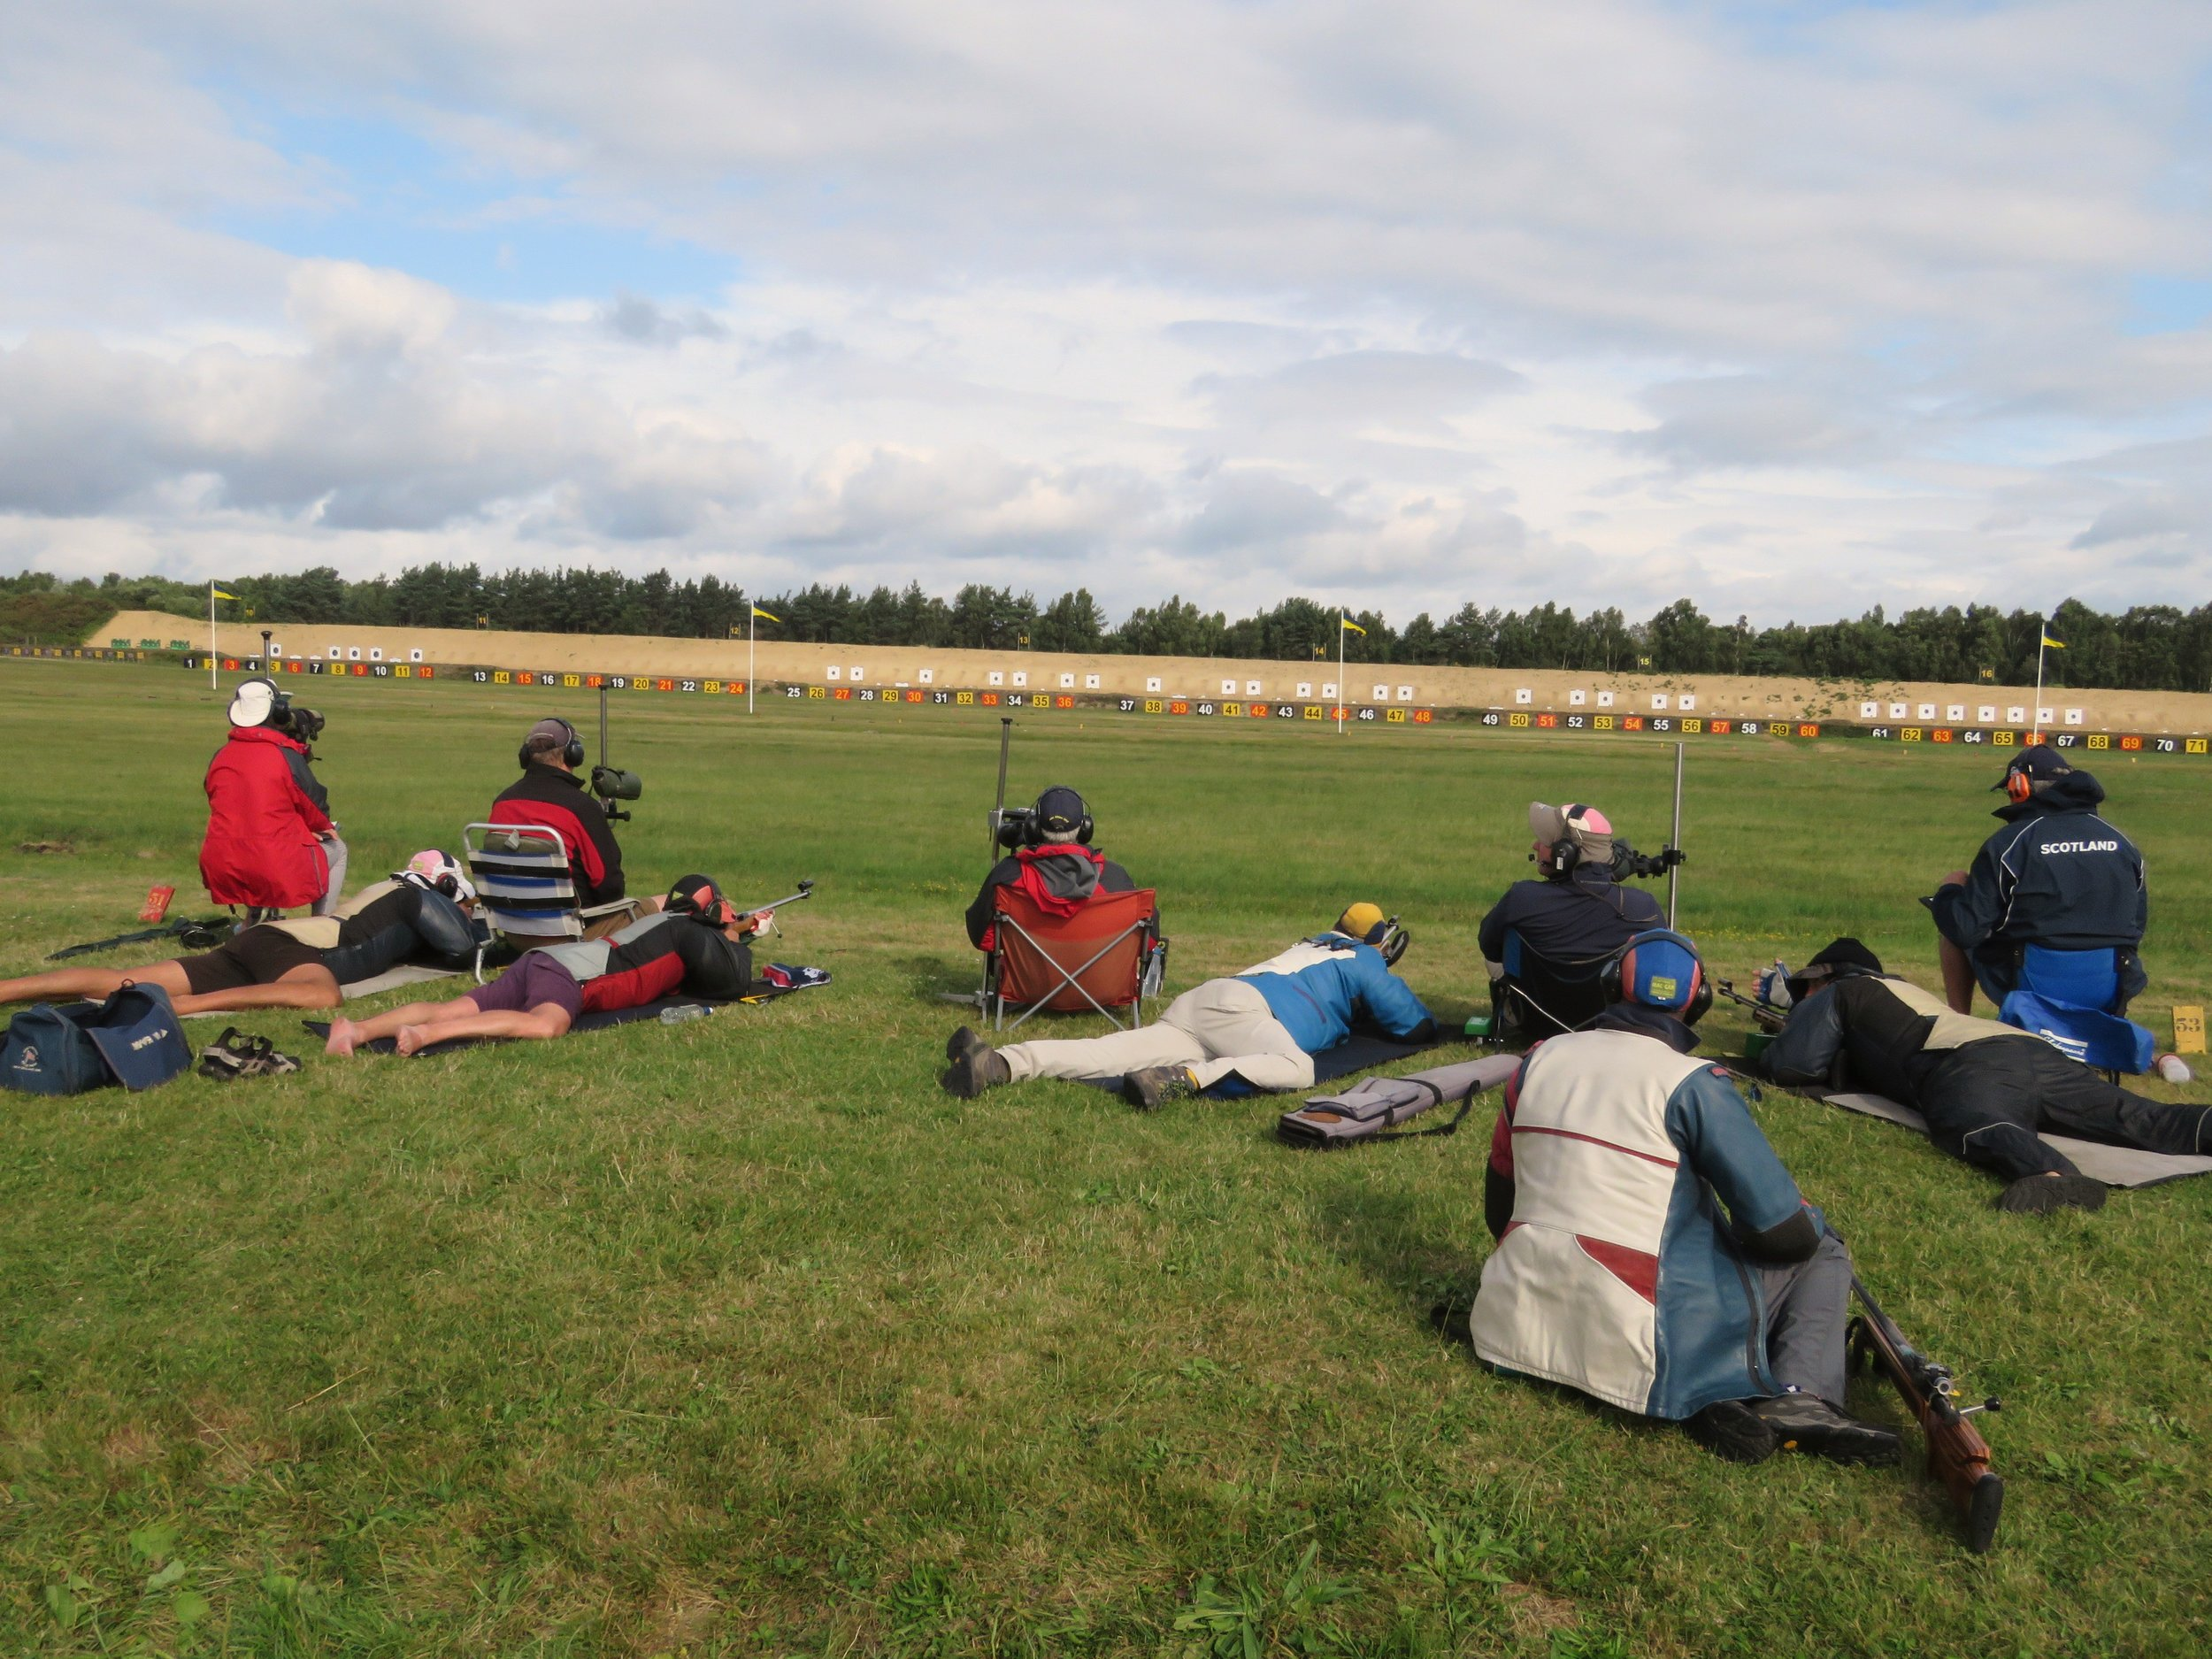 GB team in Kolapore match in typical two target format: Main Wind coach central, plotters on extreme left and right and target coaches sitting between two firers.  Sandy Walker left hand firer on left target, Ian Shaw (lightblue jacket) and Bruce Logan right, plotting for right hand target.